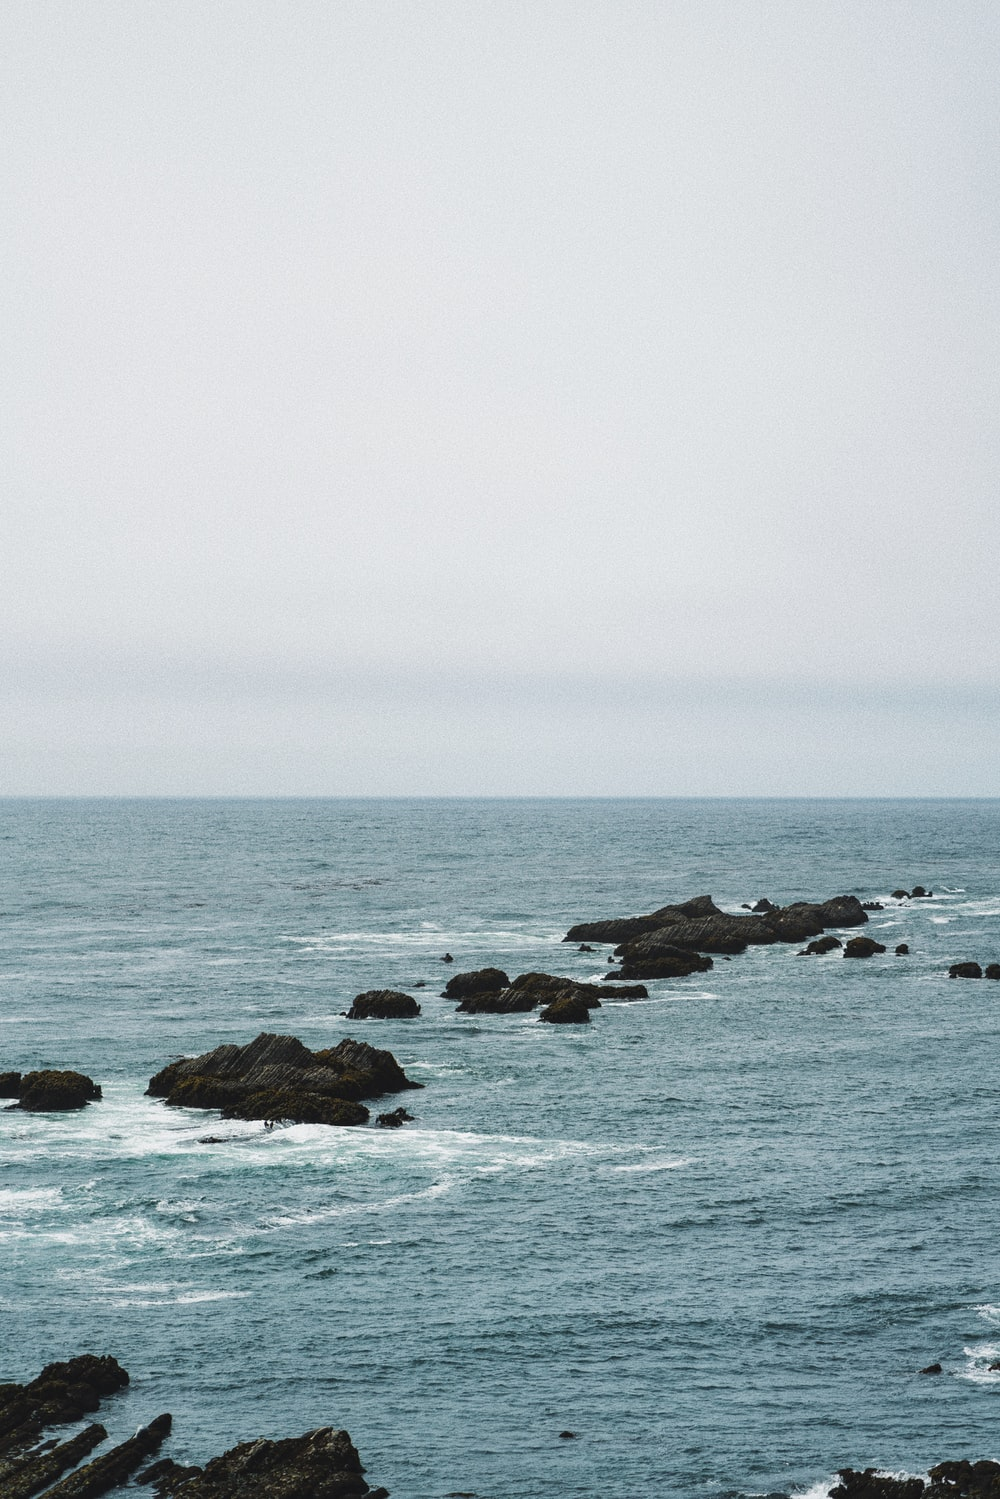 brown rock formation on sea under white sky during daytime